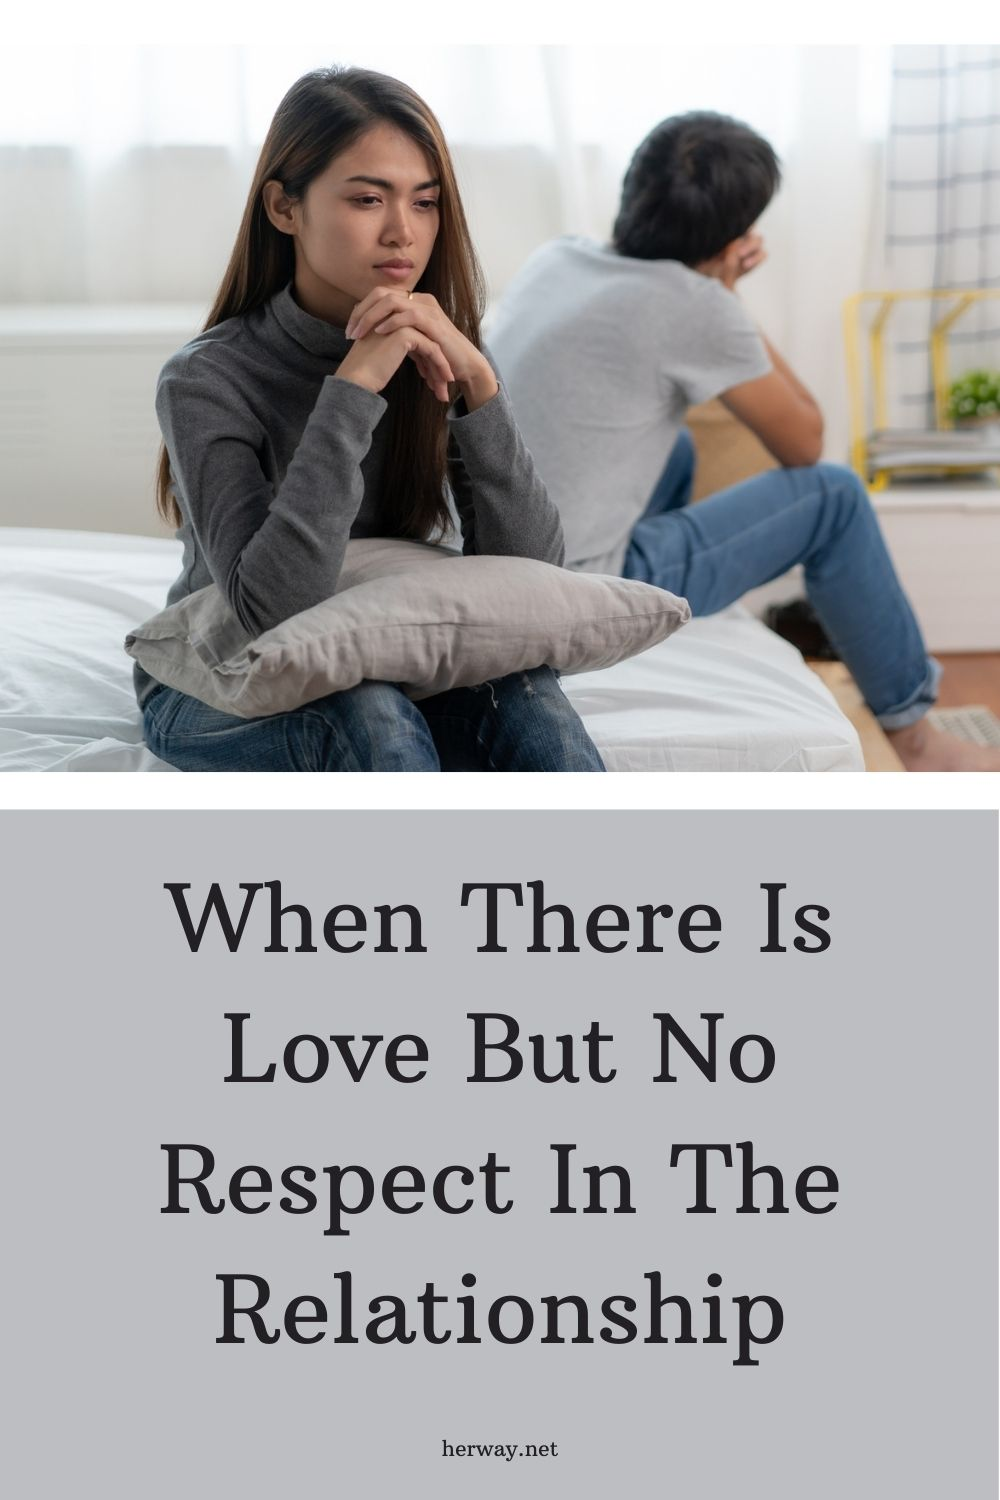 When There Is Love But No Respect In The Relationship